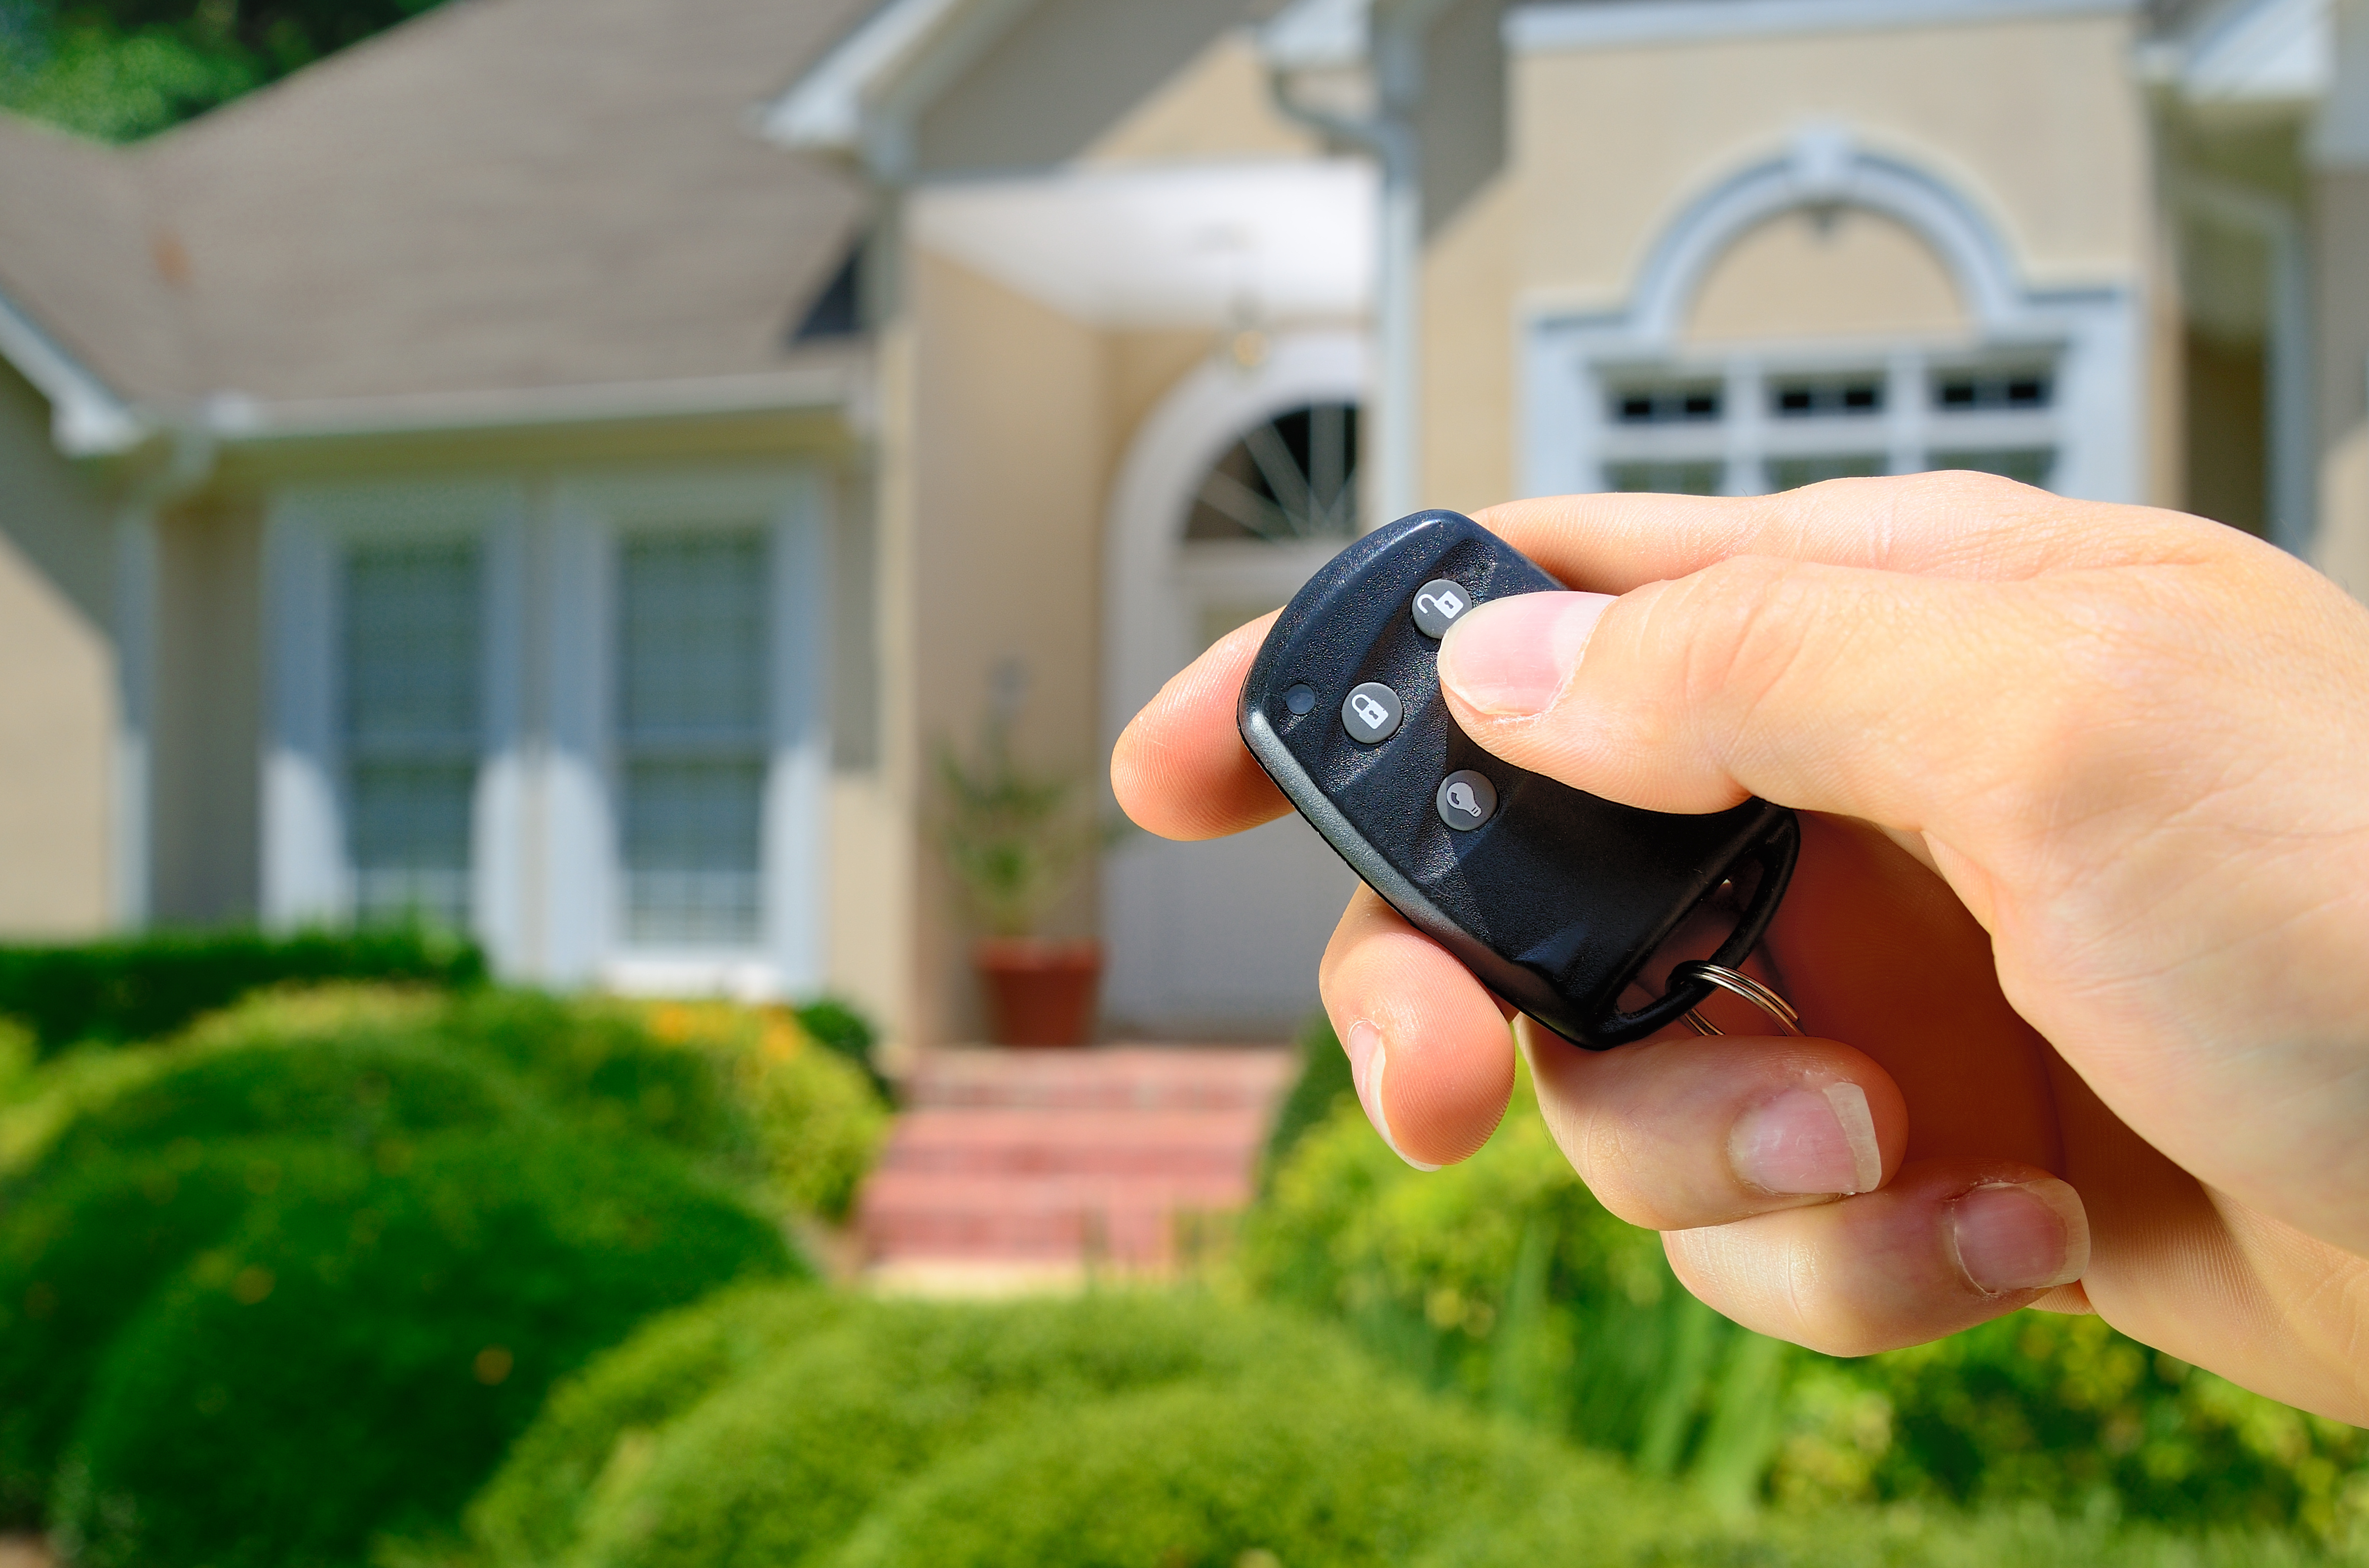 Discover The Latest & Safest Security Systems in UAE!